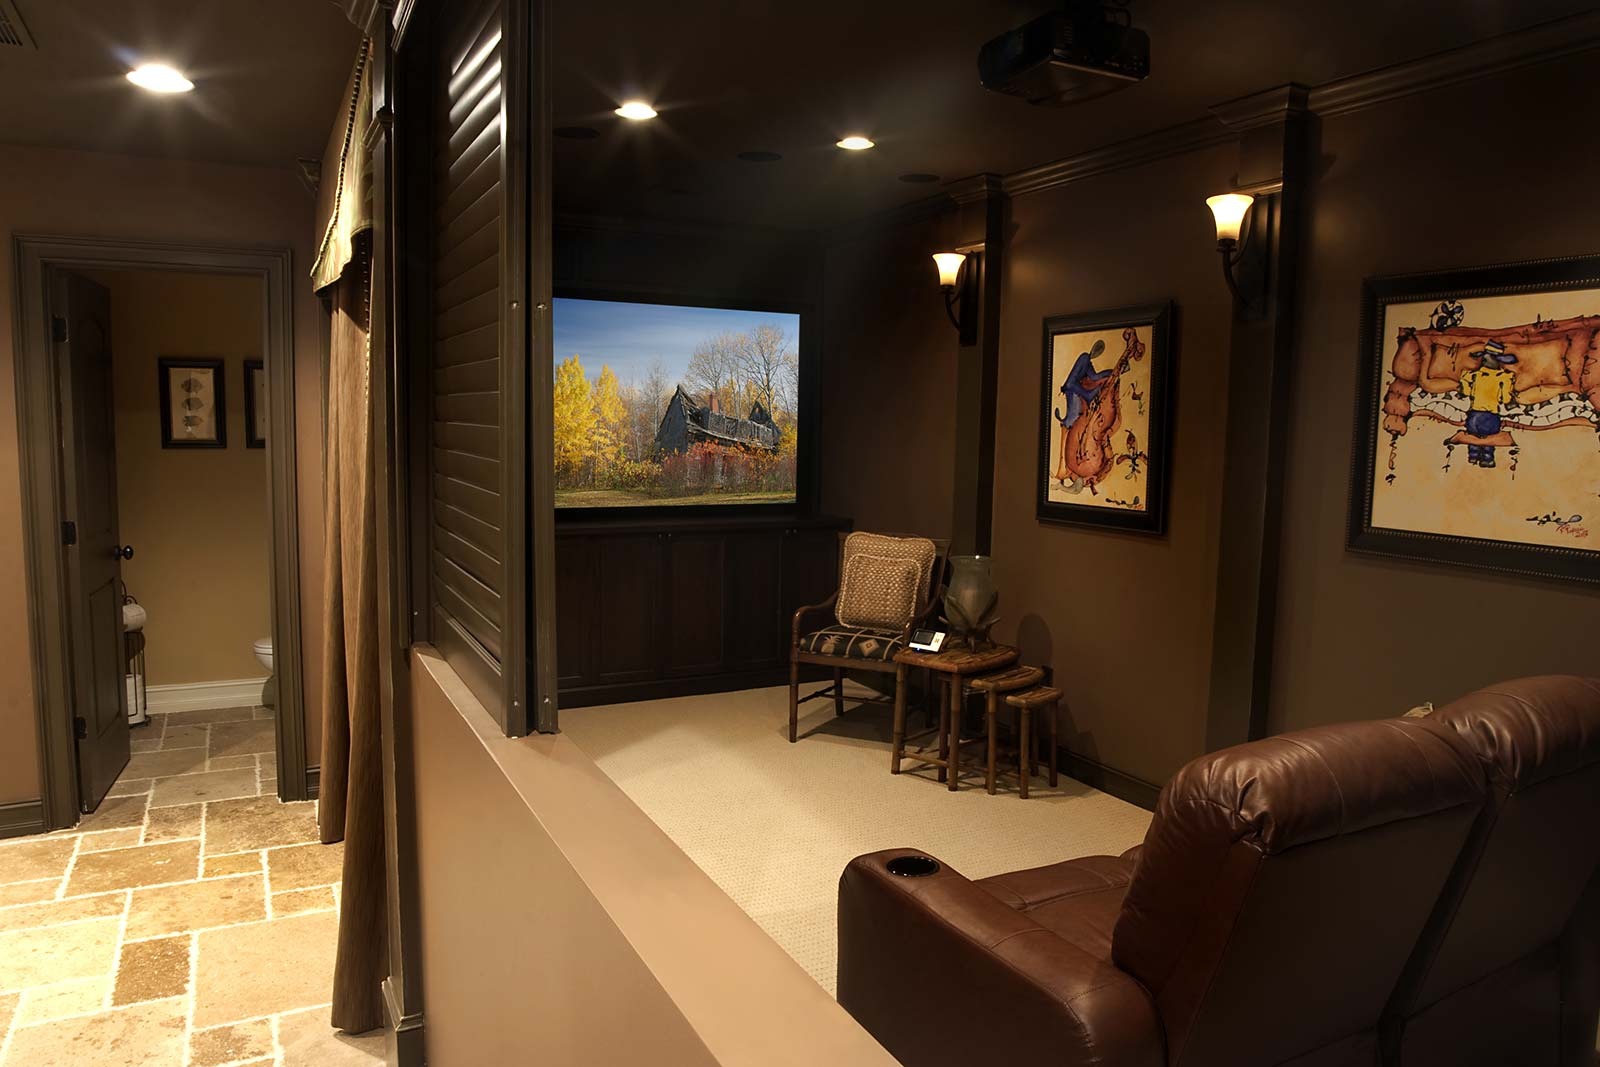 Home theater with sliding panel half-wall open